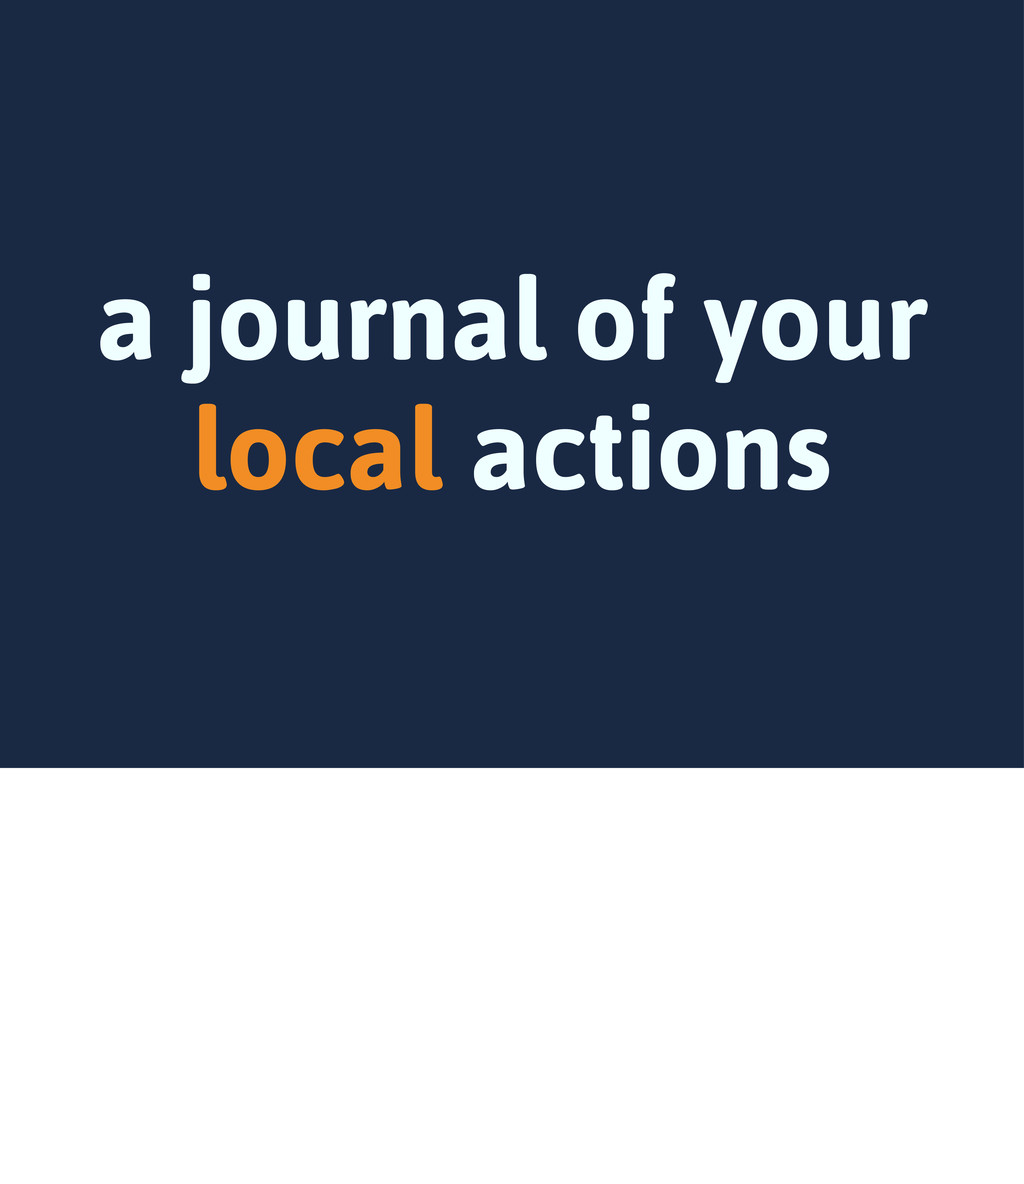 a journal of your local actions